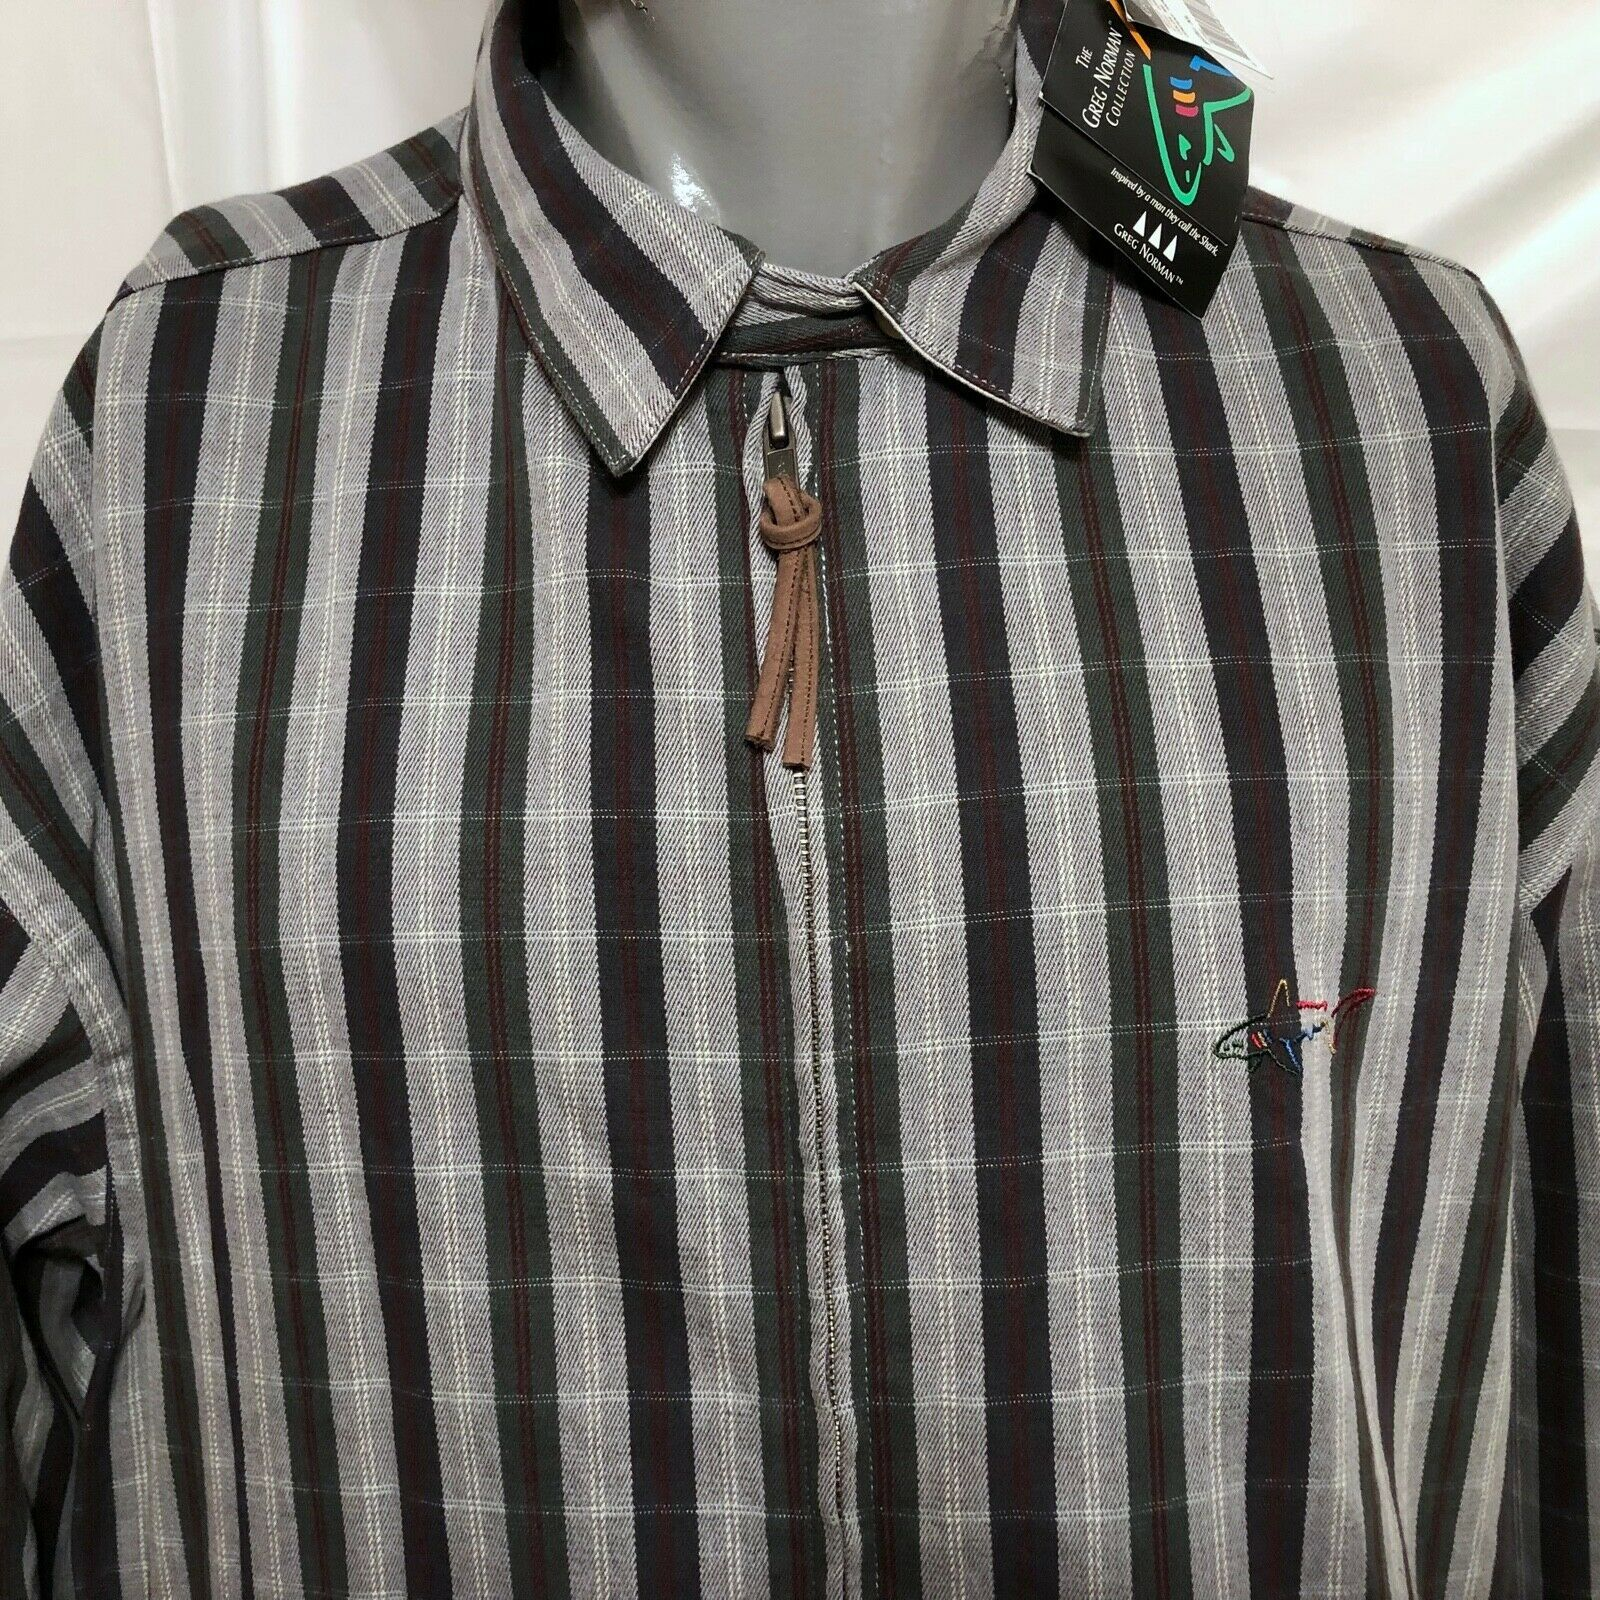 NWT VTG Deadstock Greg Norman Striped and 50 similar items